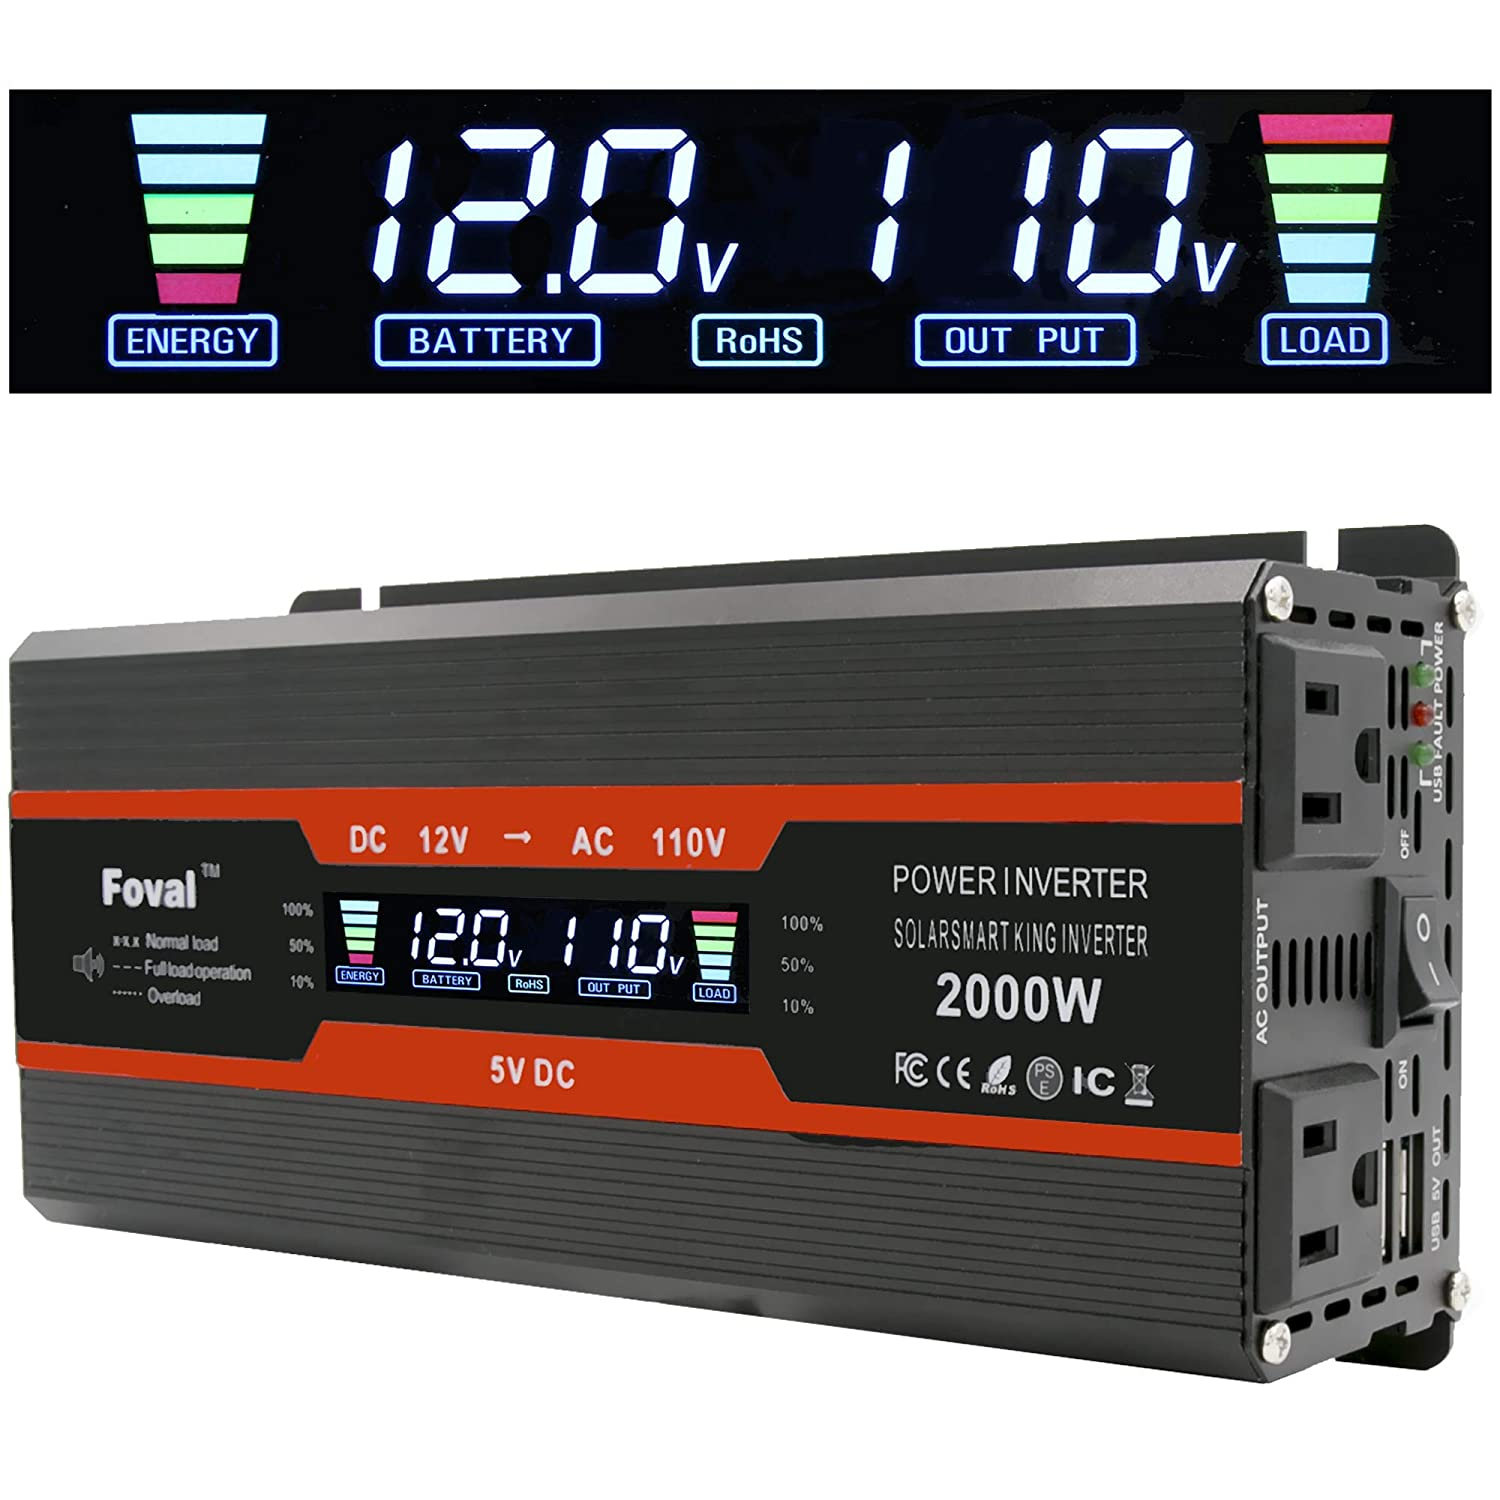 Cantonape 1000W/2000W(Peak) Car Power Inverter DC 12V to 110V AC Converter with LCD Display Dual AC Outlets and Dual USB Car Charger for Car Home Laptop Truck (Black)